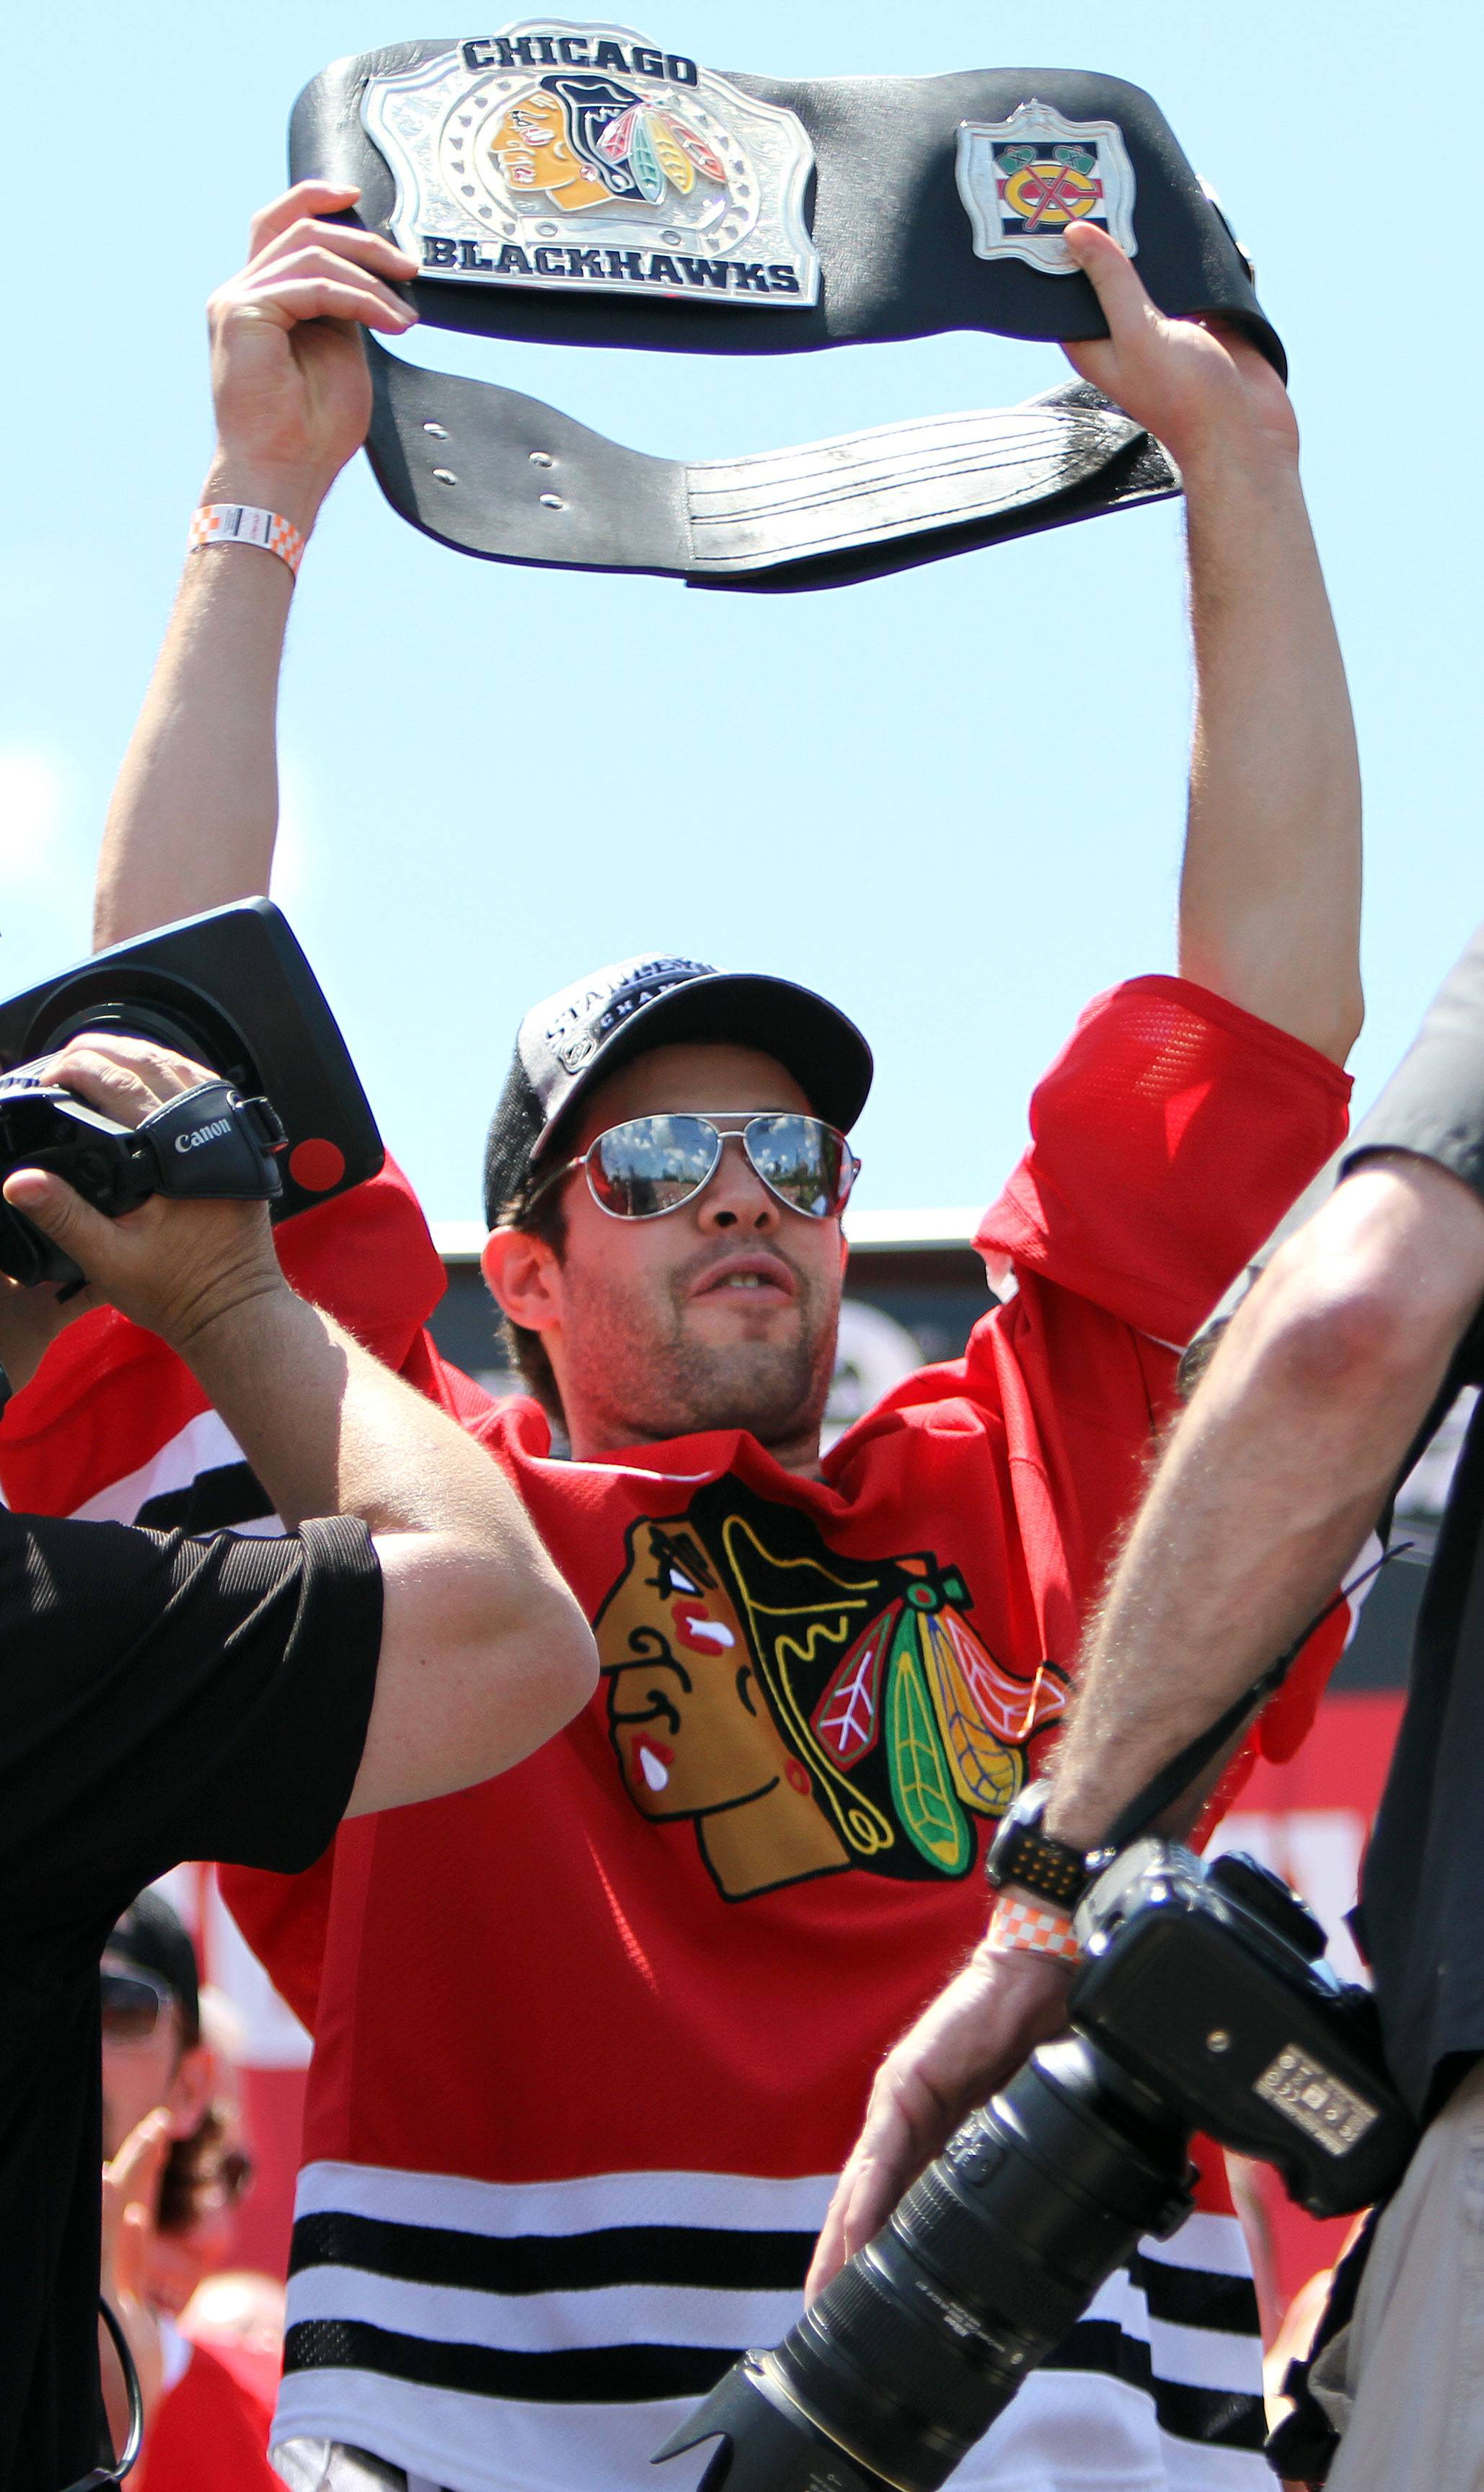 Corey Crawford raises up a wrestling belt given to him by Patrick Kane.